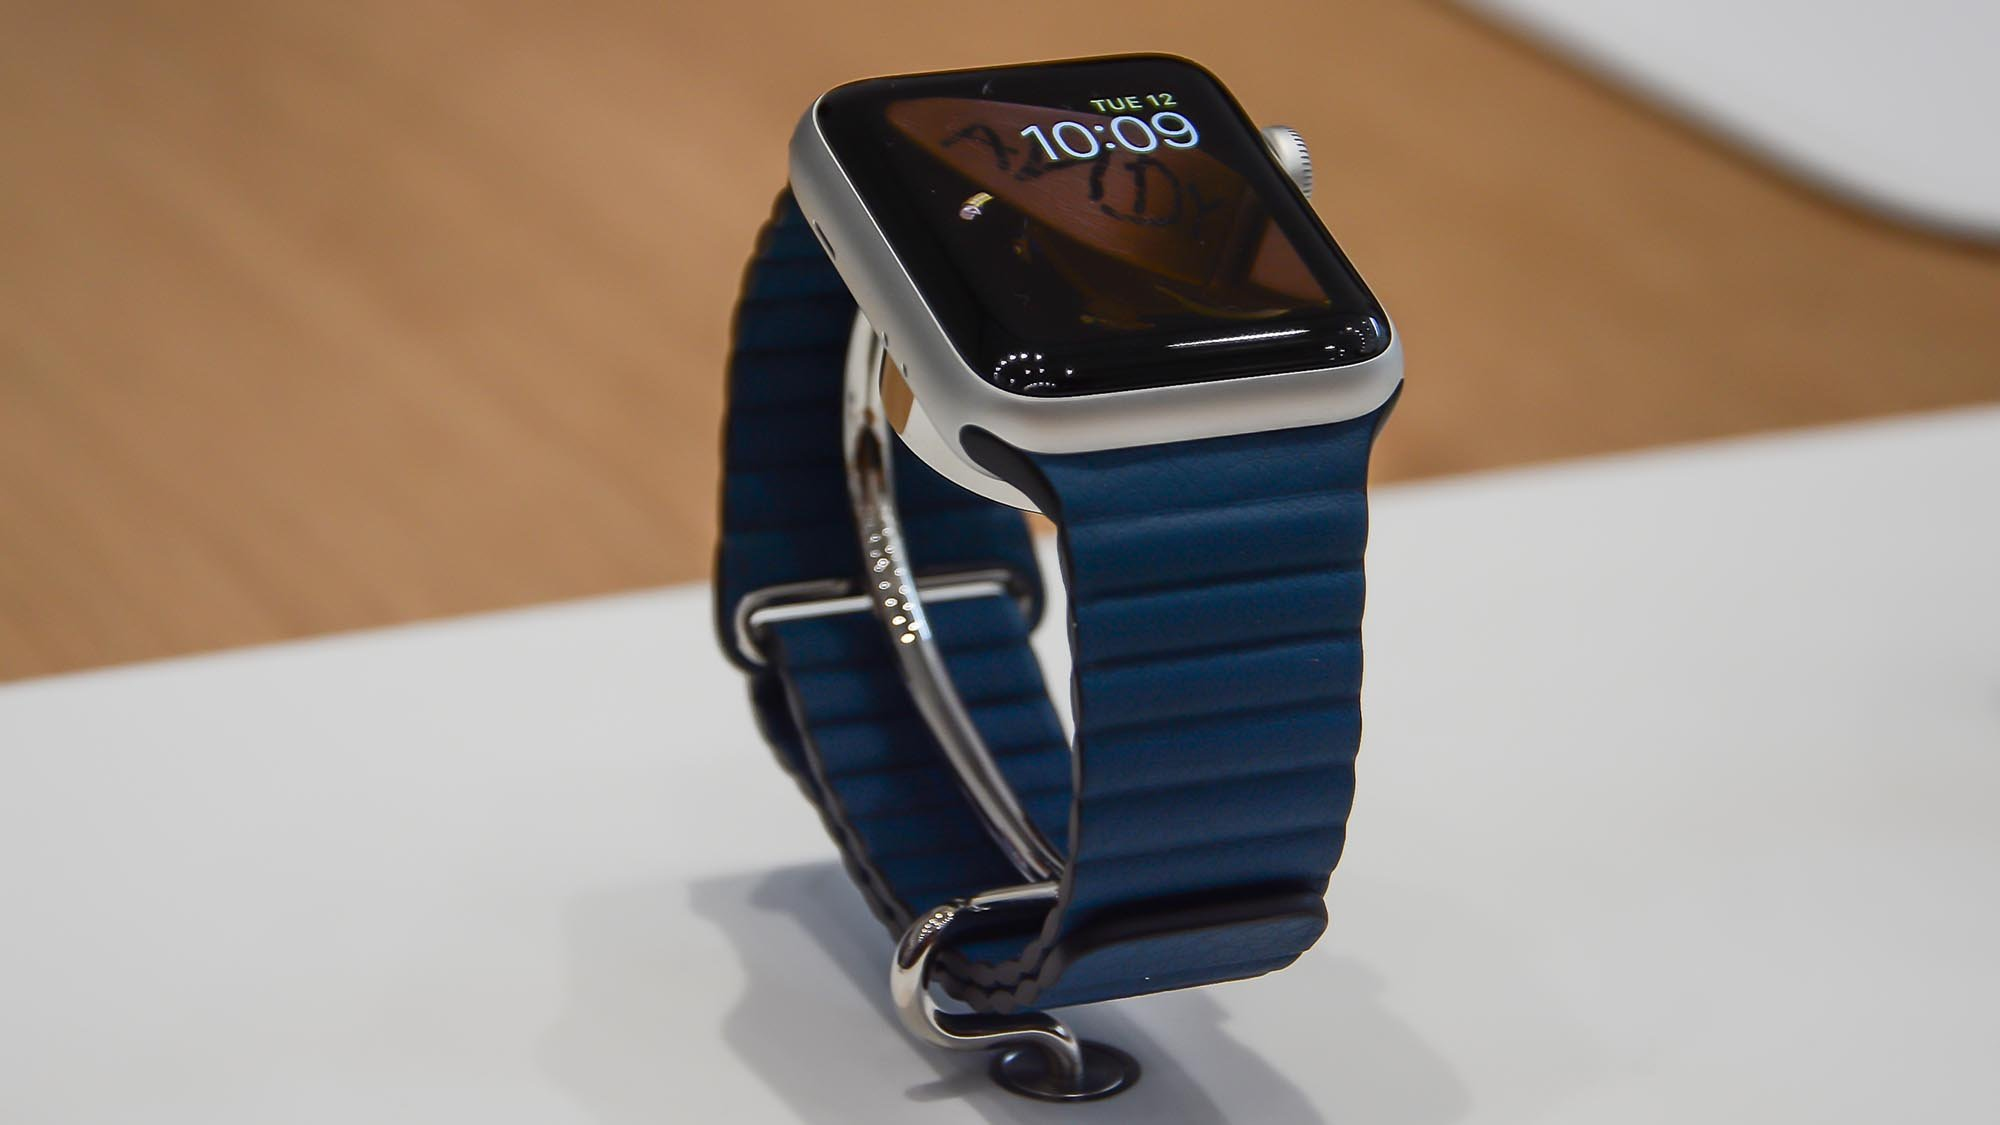 watches verge products with the os iphone on i and testing rare discount bundle apple phone watch waters s